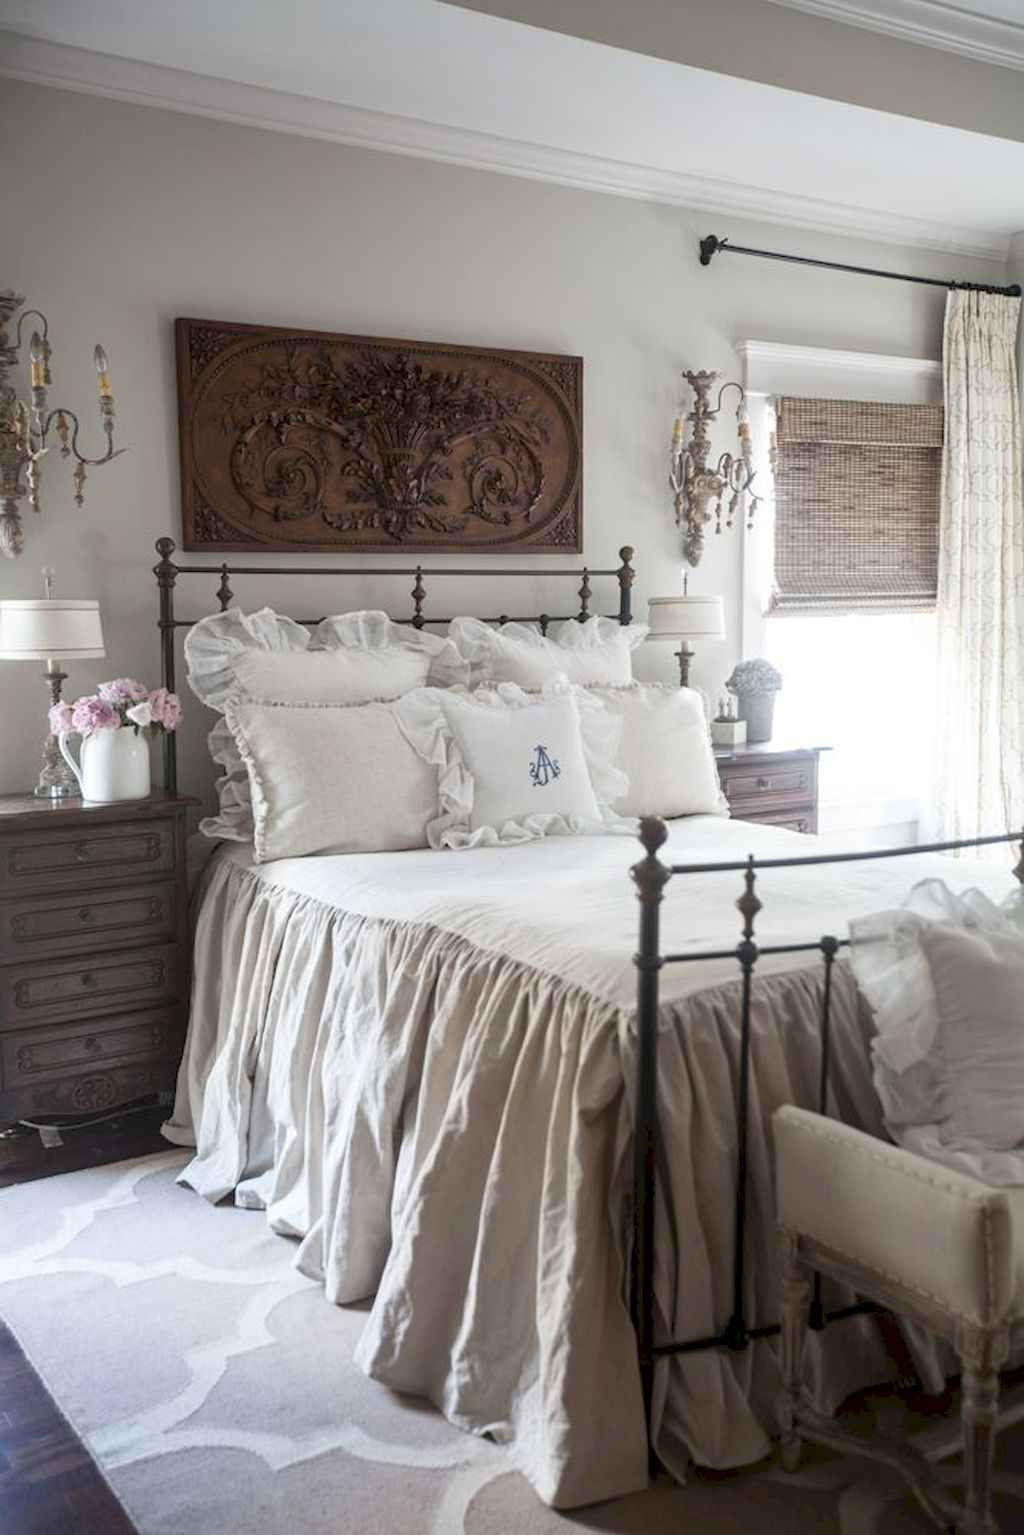 01 Affordable French Country Bedroom Decor Ideas Decoradeas Country Bedroom Decor French Country Decorating Bedroom Country House Decor